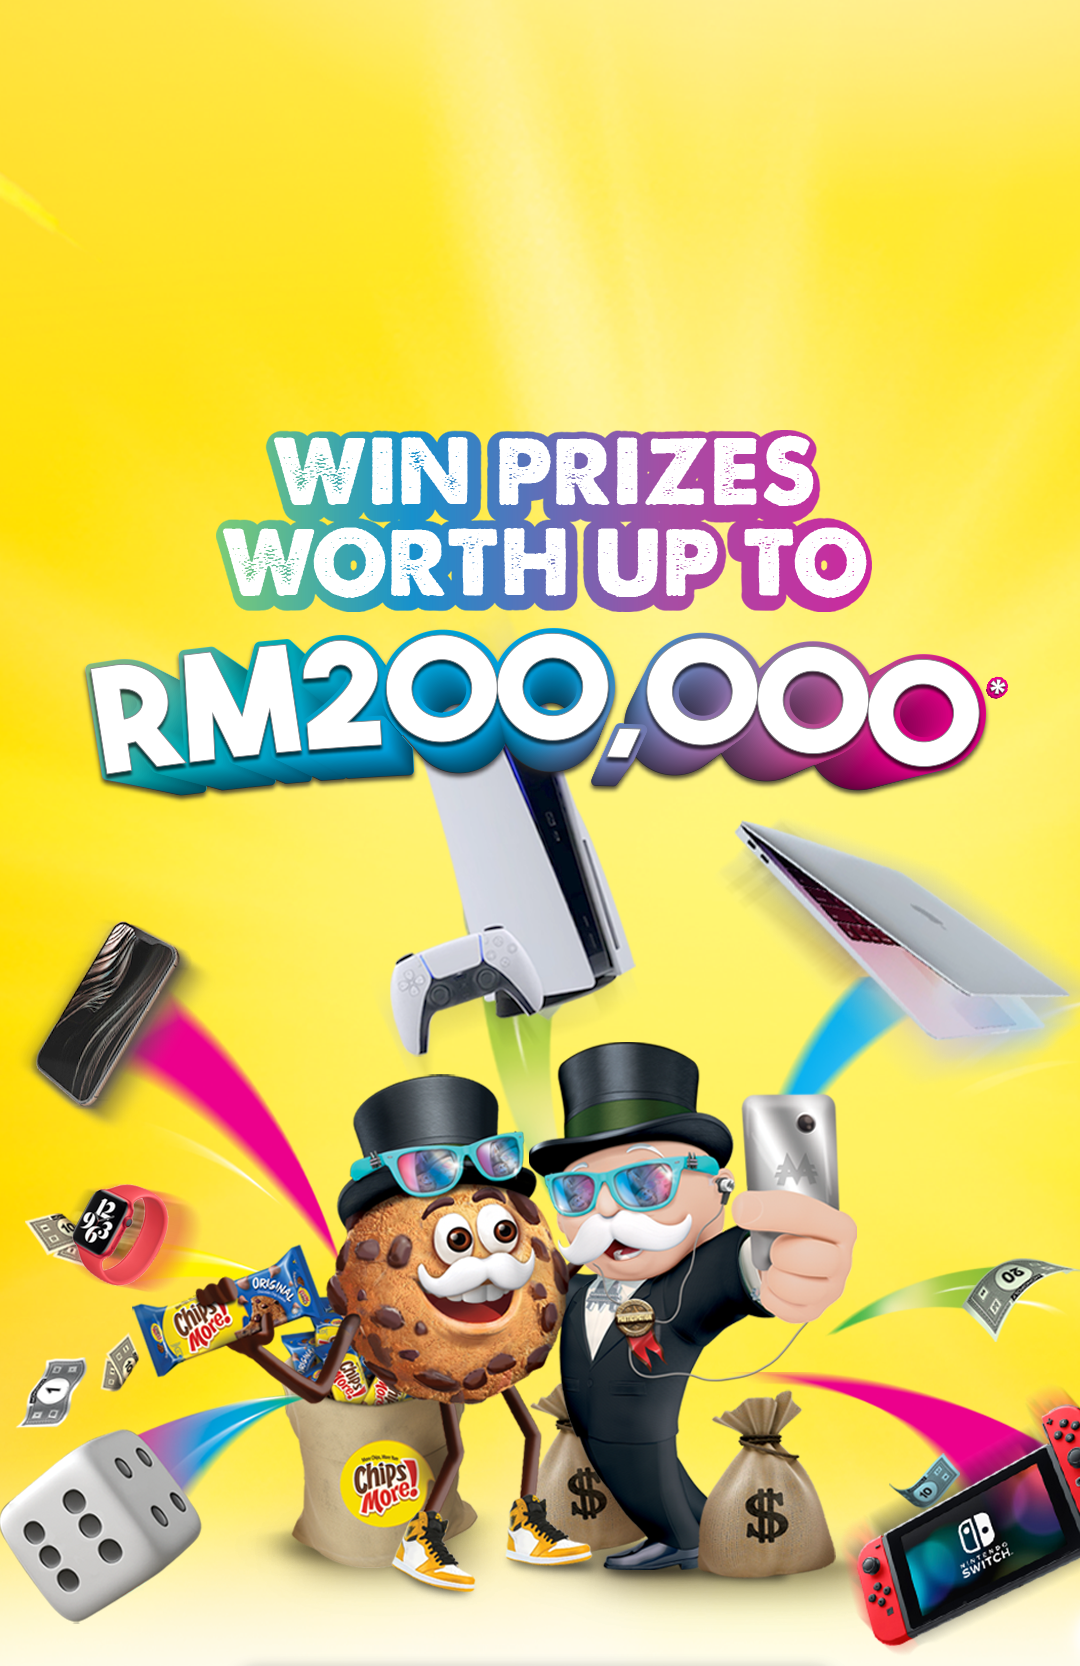 Win Prizes worth up to RM200,000